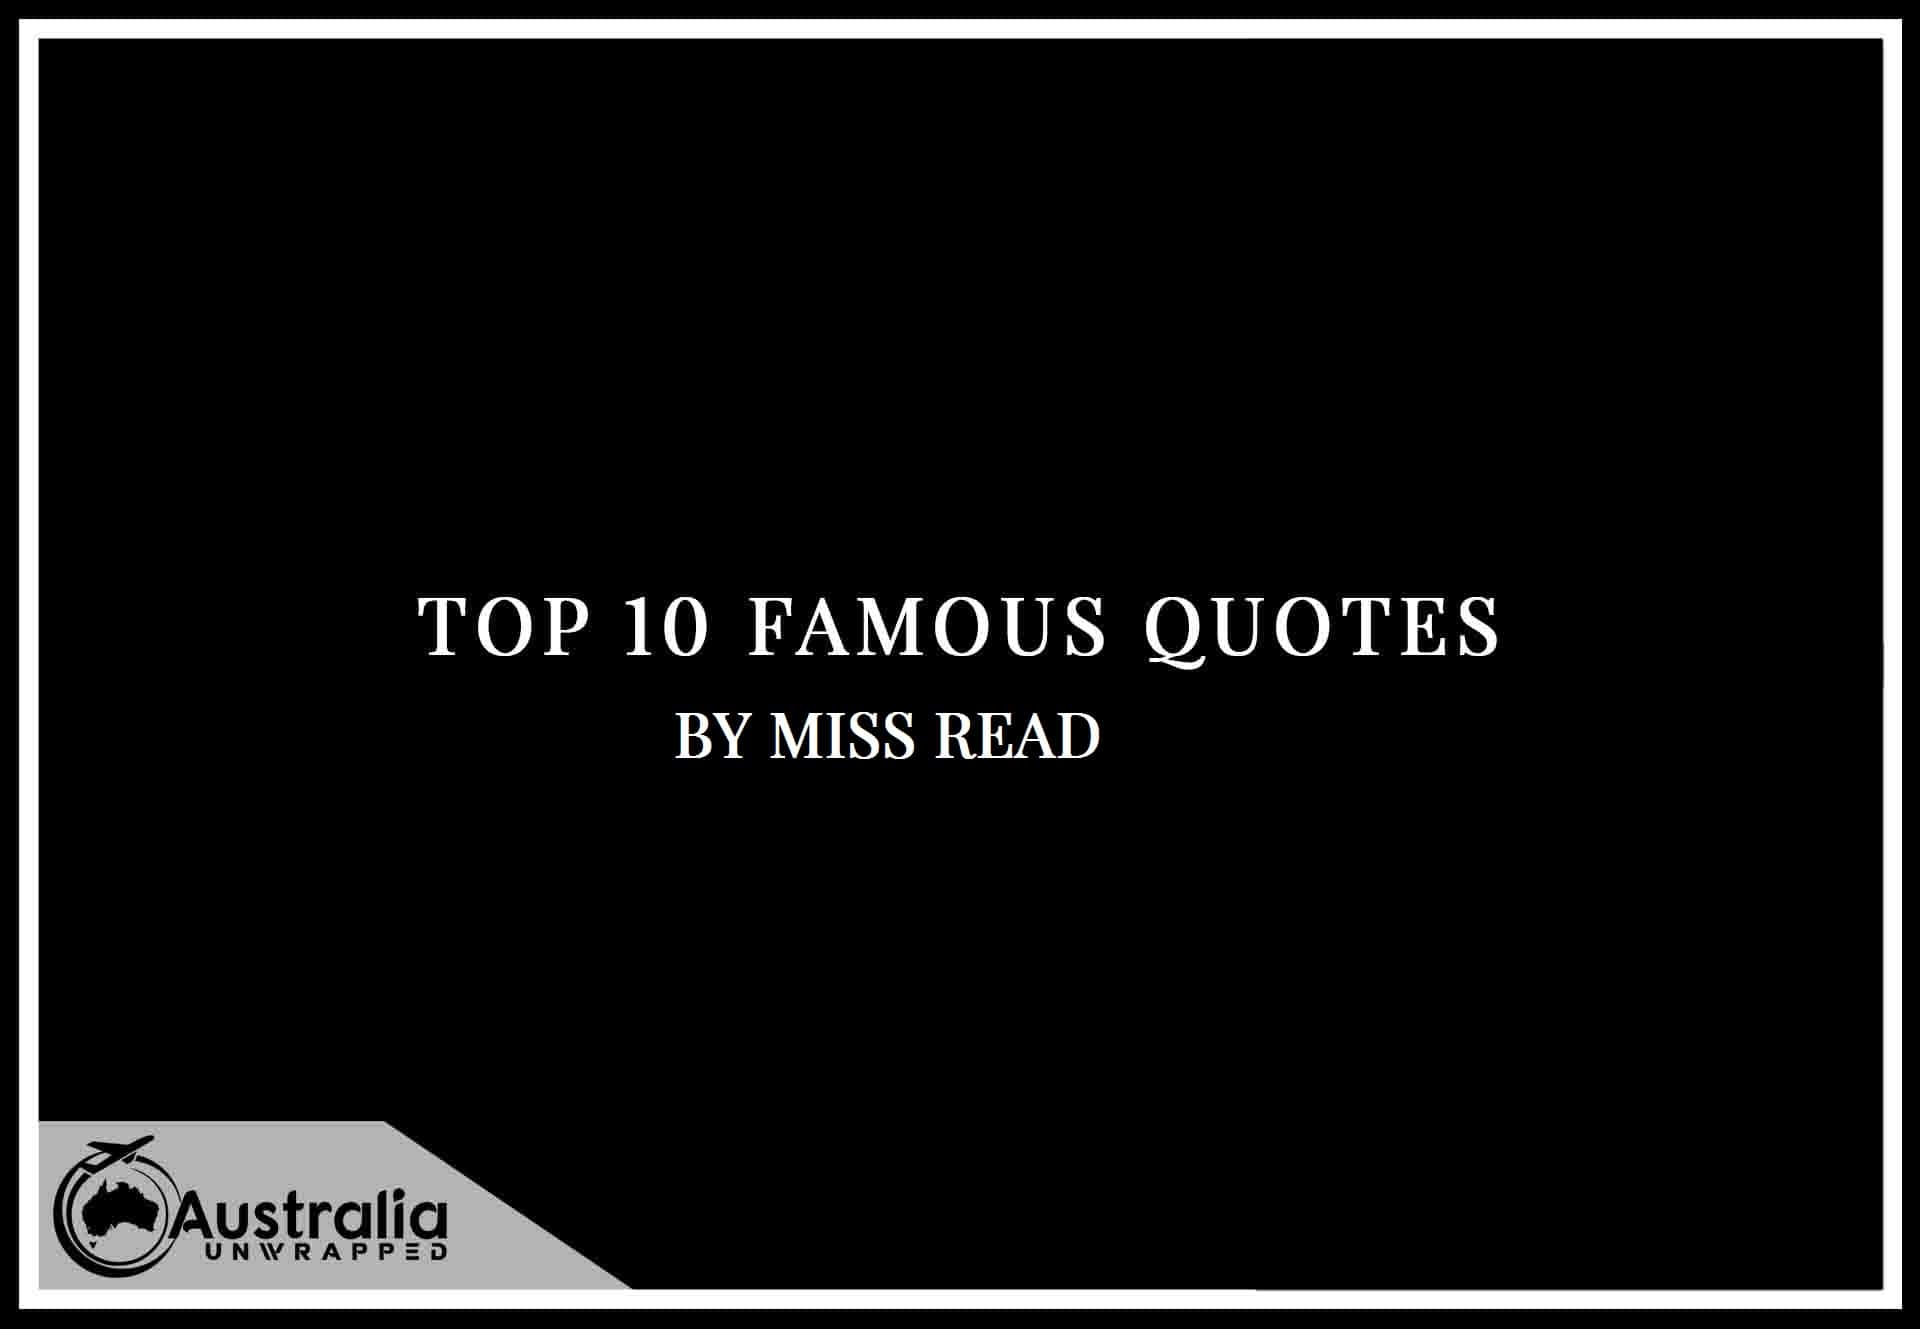 Miss Read's Top 10 Popular and Famous Quotes